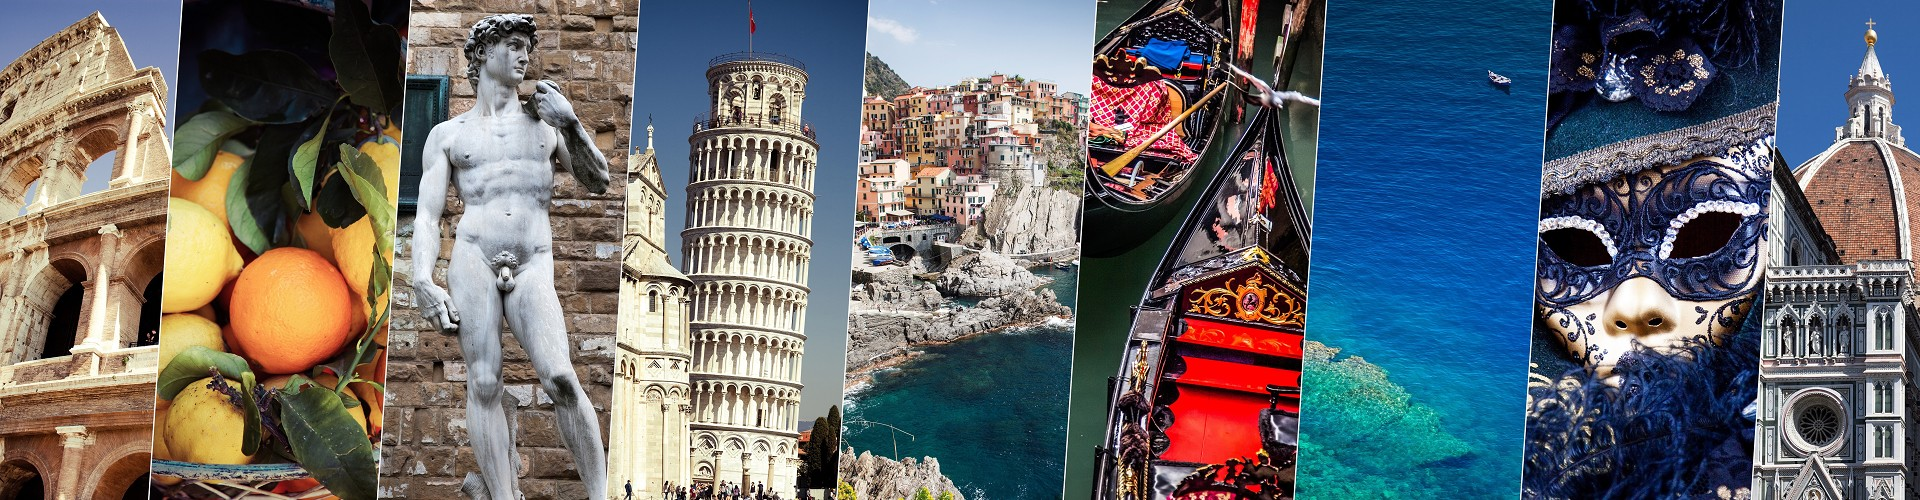 Private Driver Tours Italy | Hiring a Driver in Rome Italy | Minibus Hire with Driver Italy